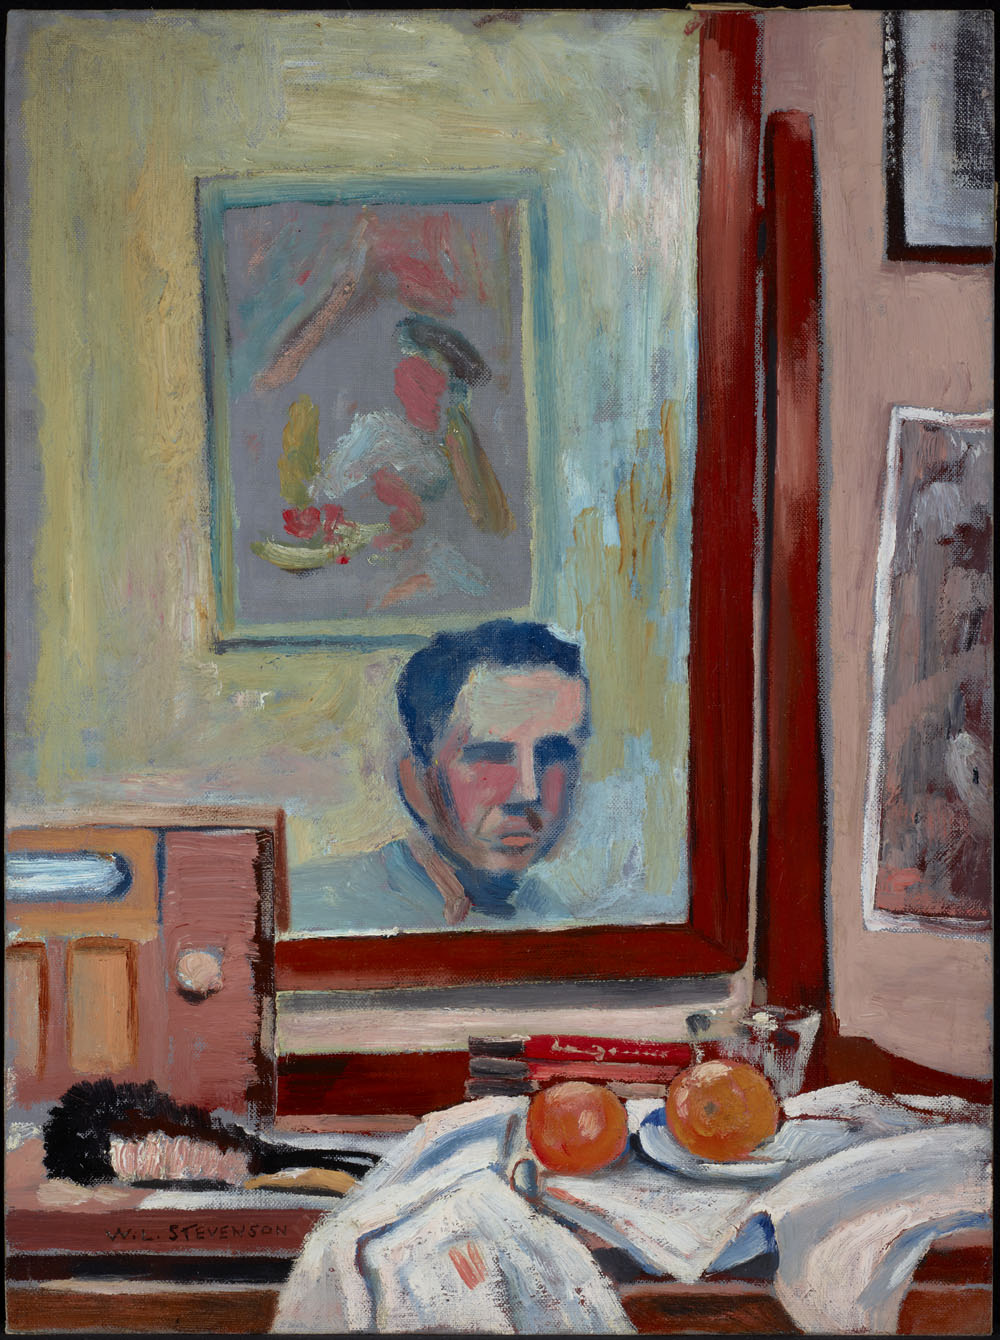 A painting of a mirror and a still-life arrangement on a dressing table with several books, a brush, a radio, and two oranges on a plate on top of a newspaper. The mirror's reflection shows the artist and another painting.